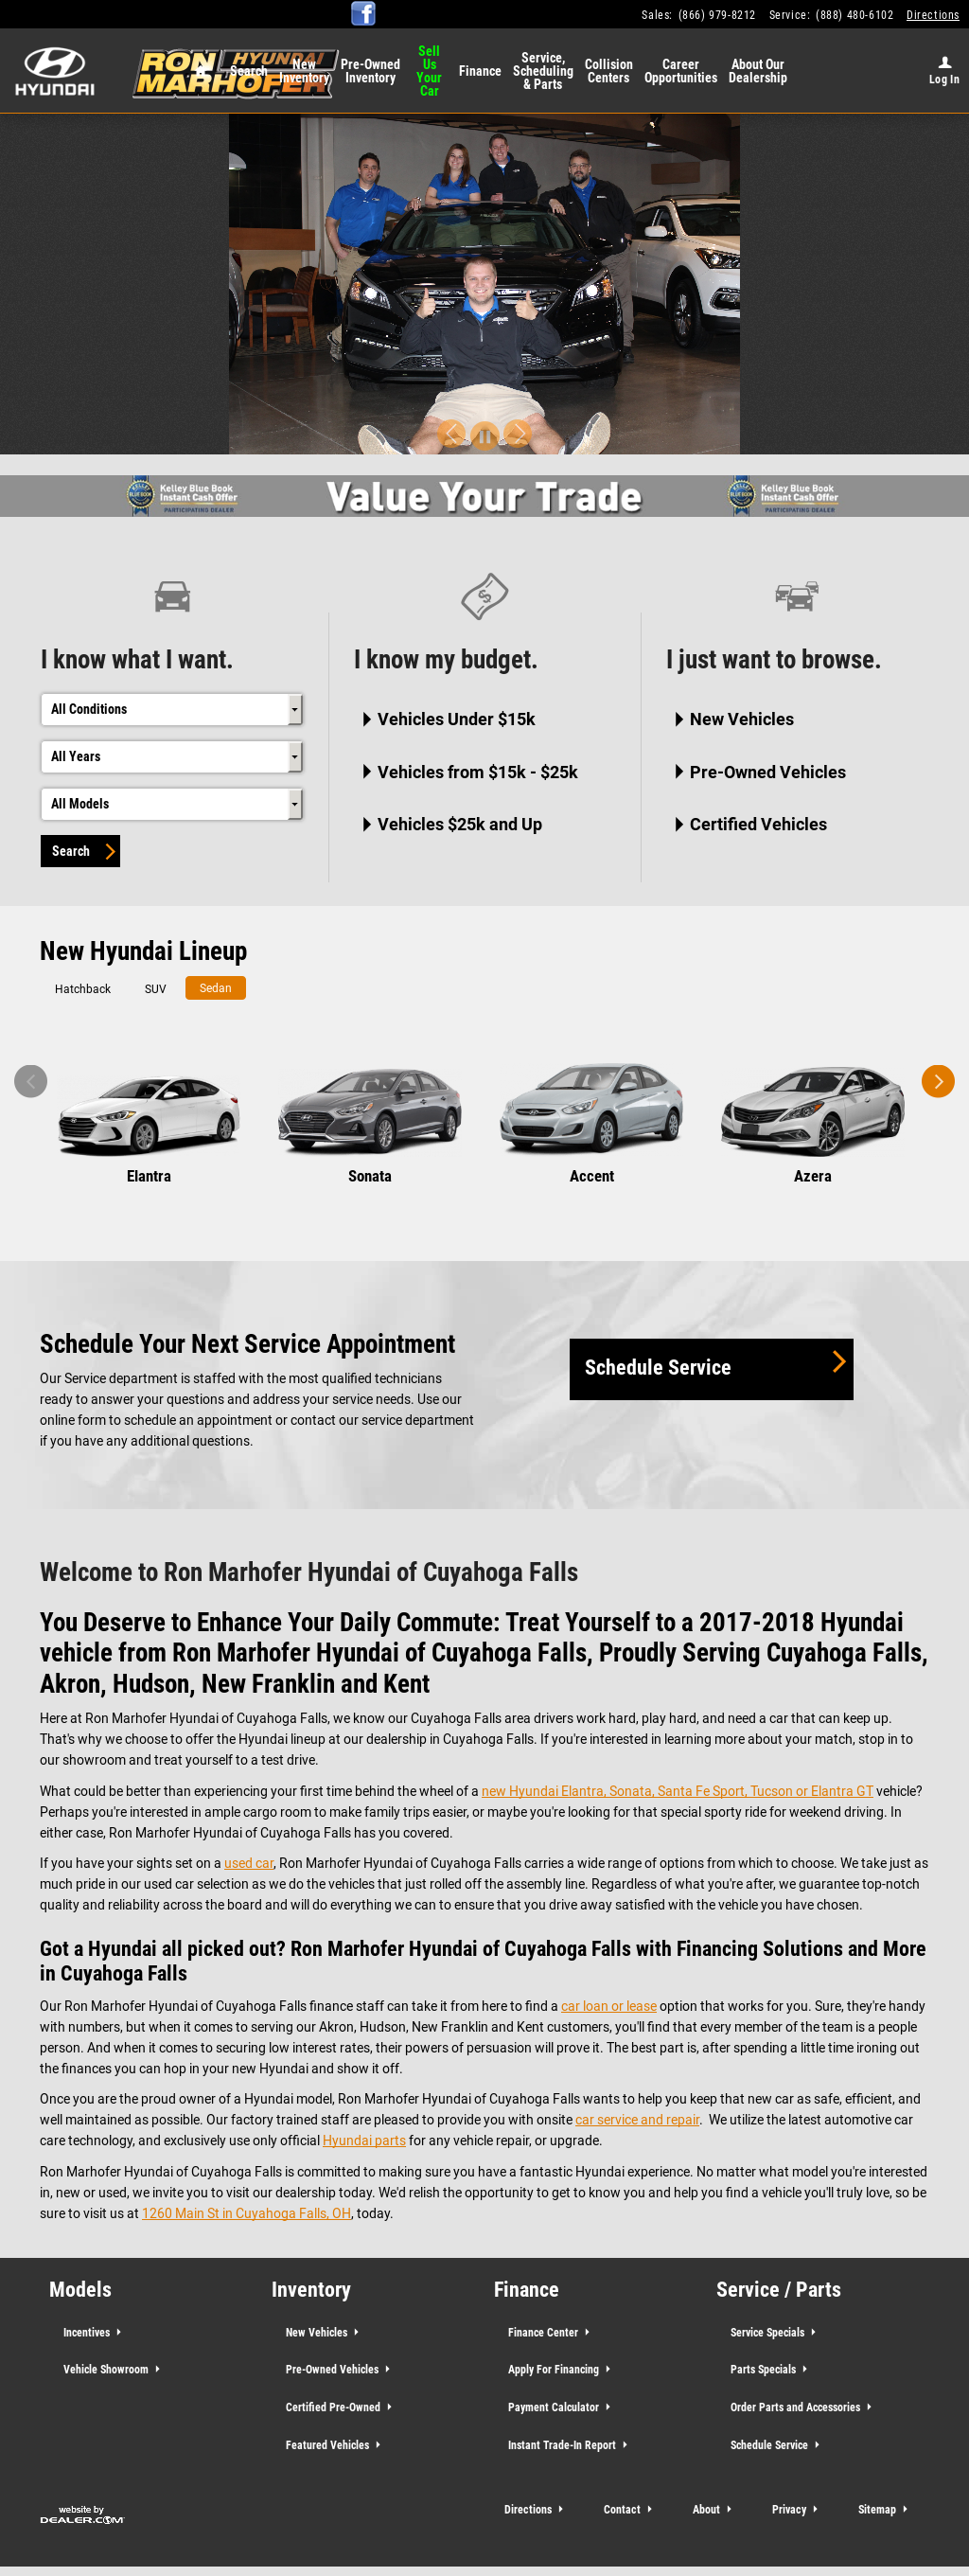 Superb Ron Marhofer Hyundai Of Cuyahoga Falls Website History